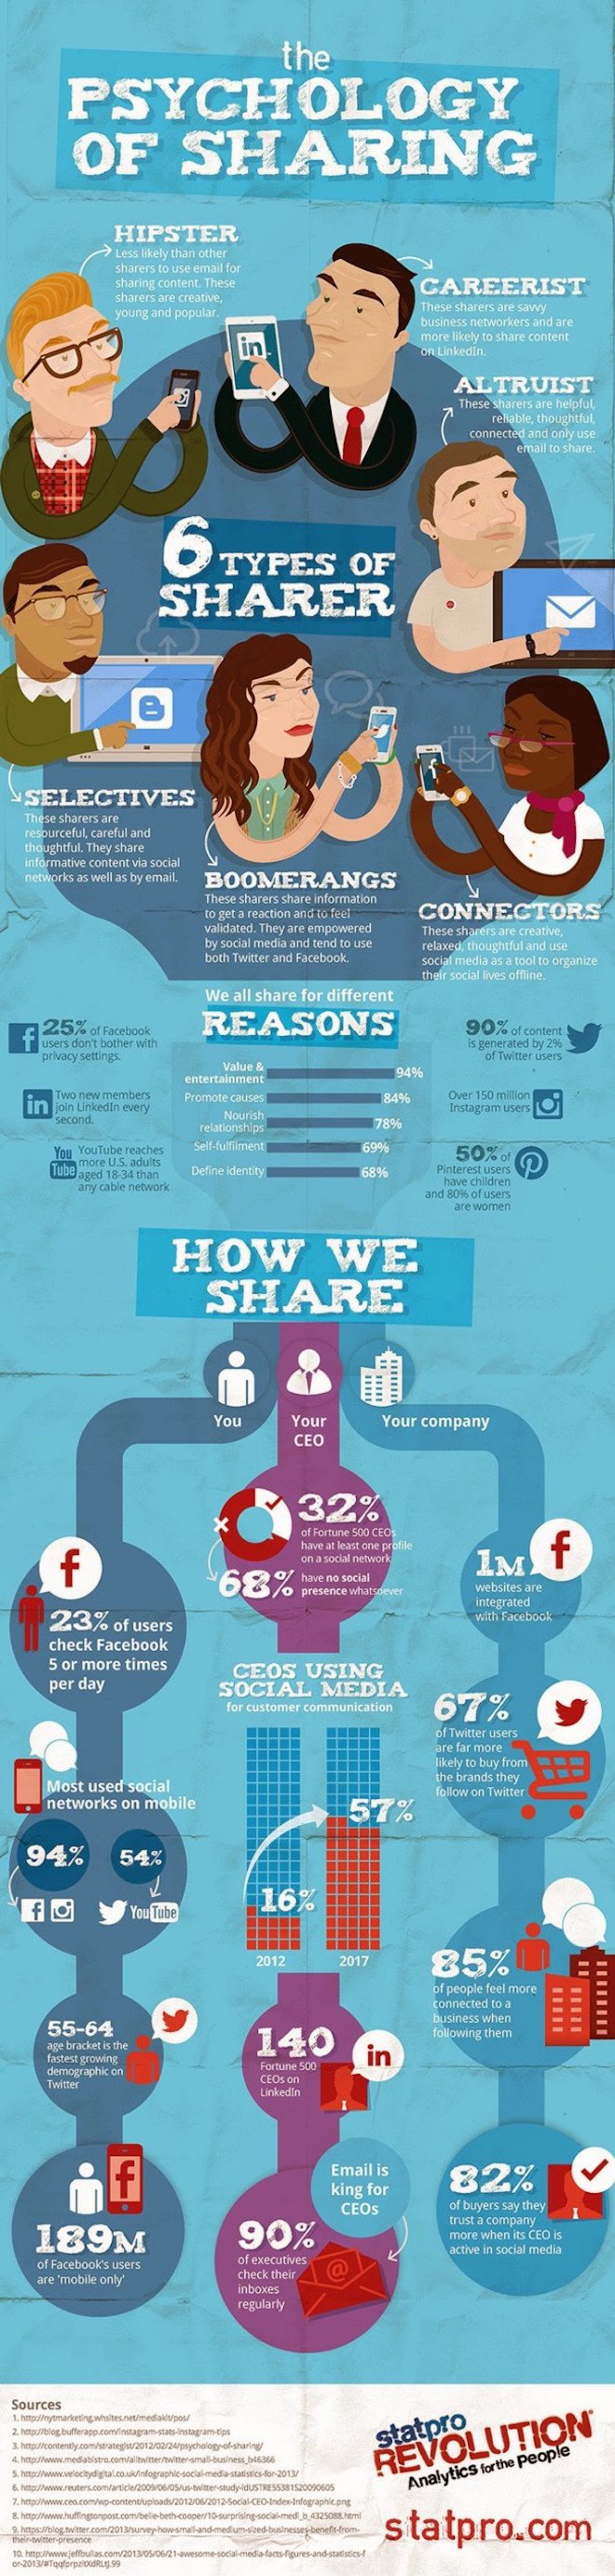 INFOGRAPHIC_social-psychology-sharing-660pxl-Wide-e1400762412355